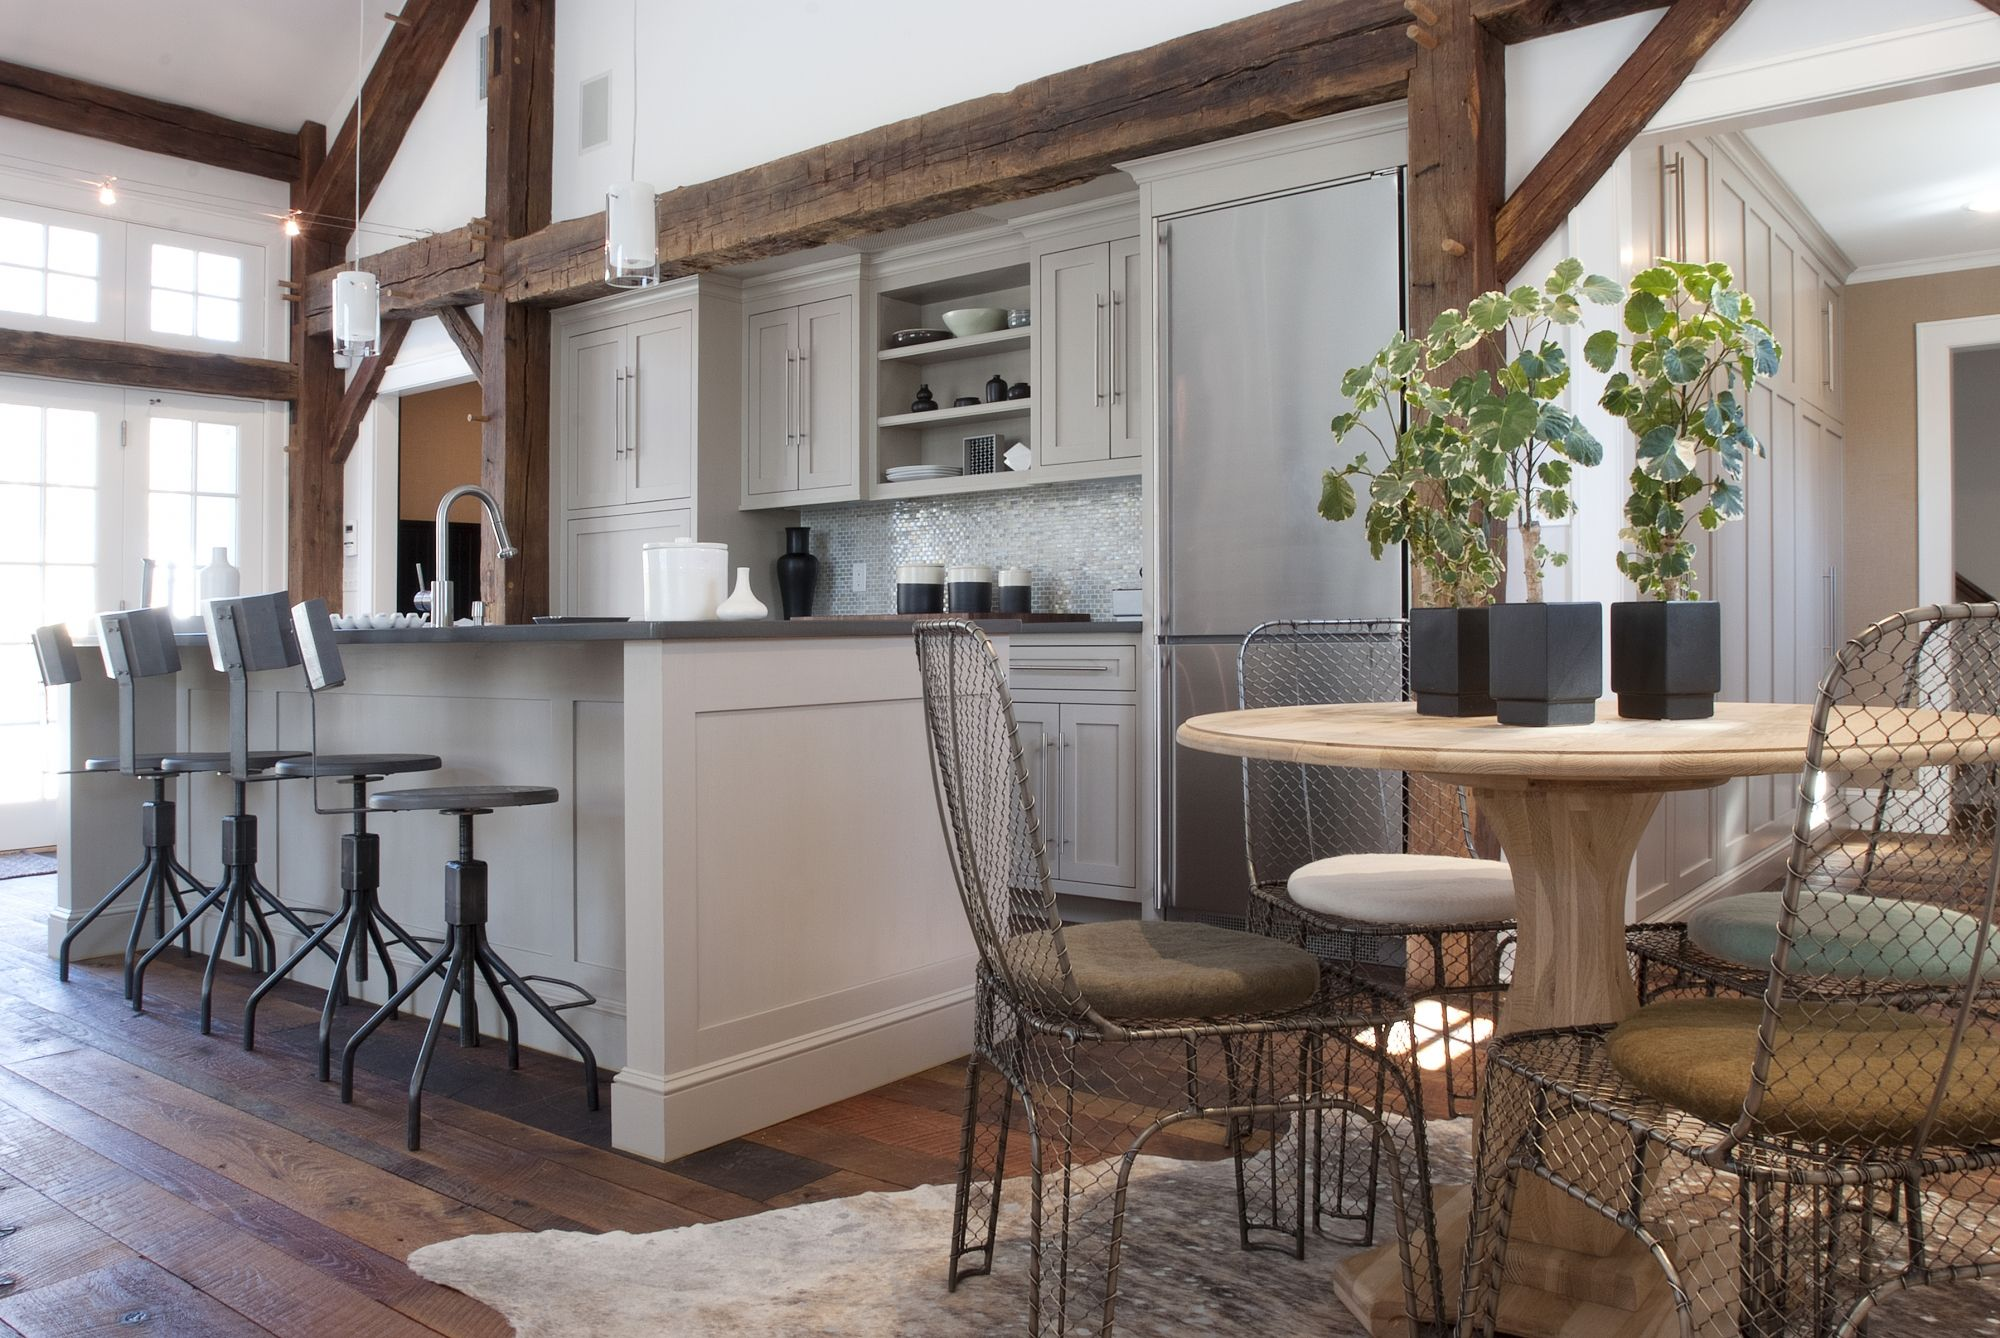 Pool House Kitchenette (Cultivate.com) Poolhouse kitchenette in ...